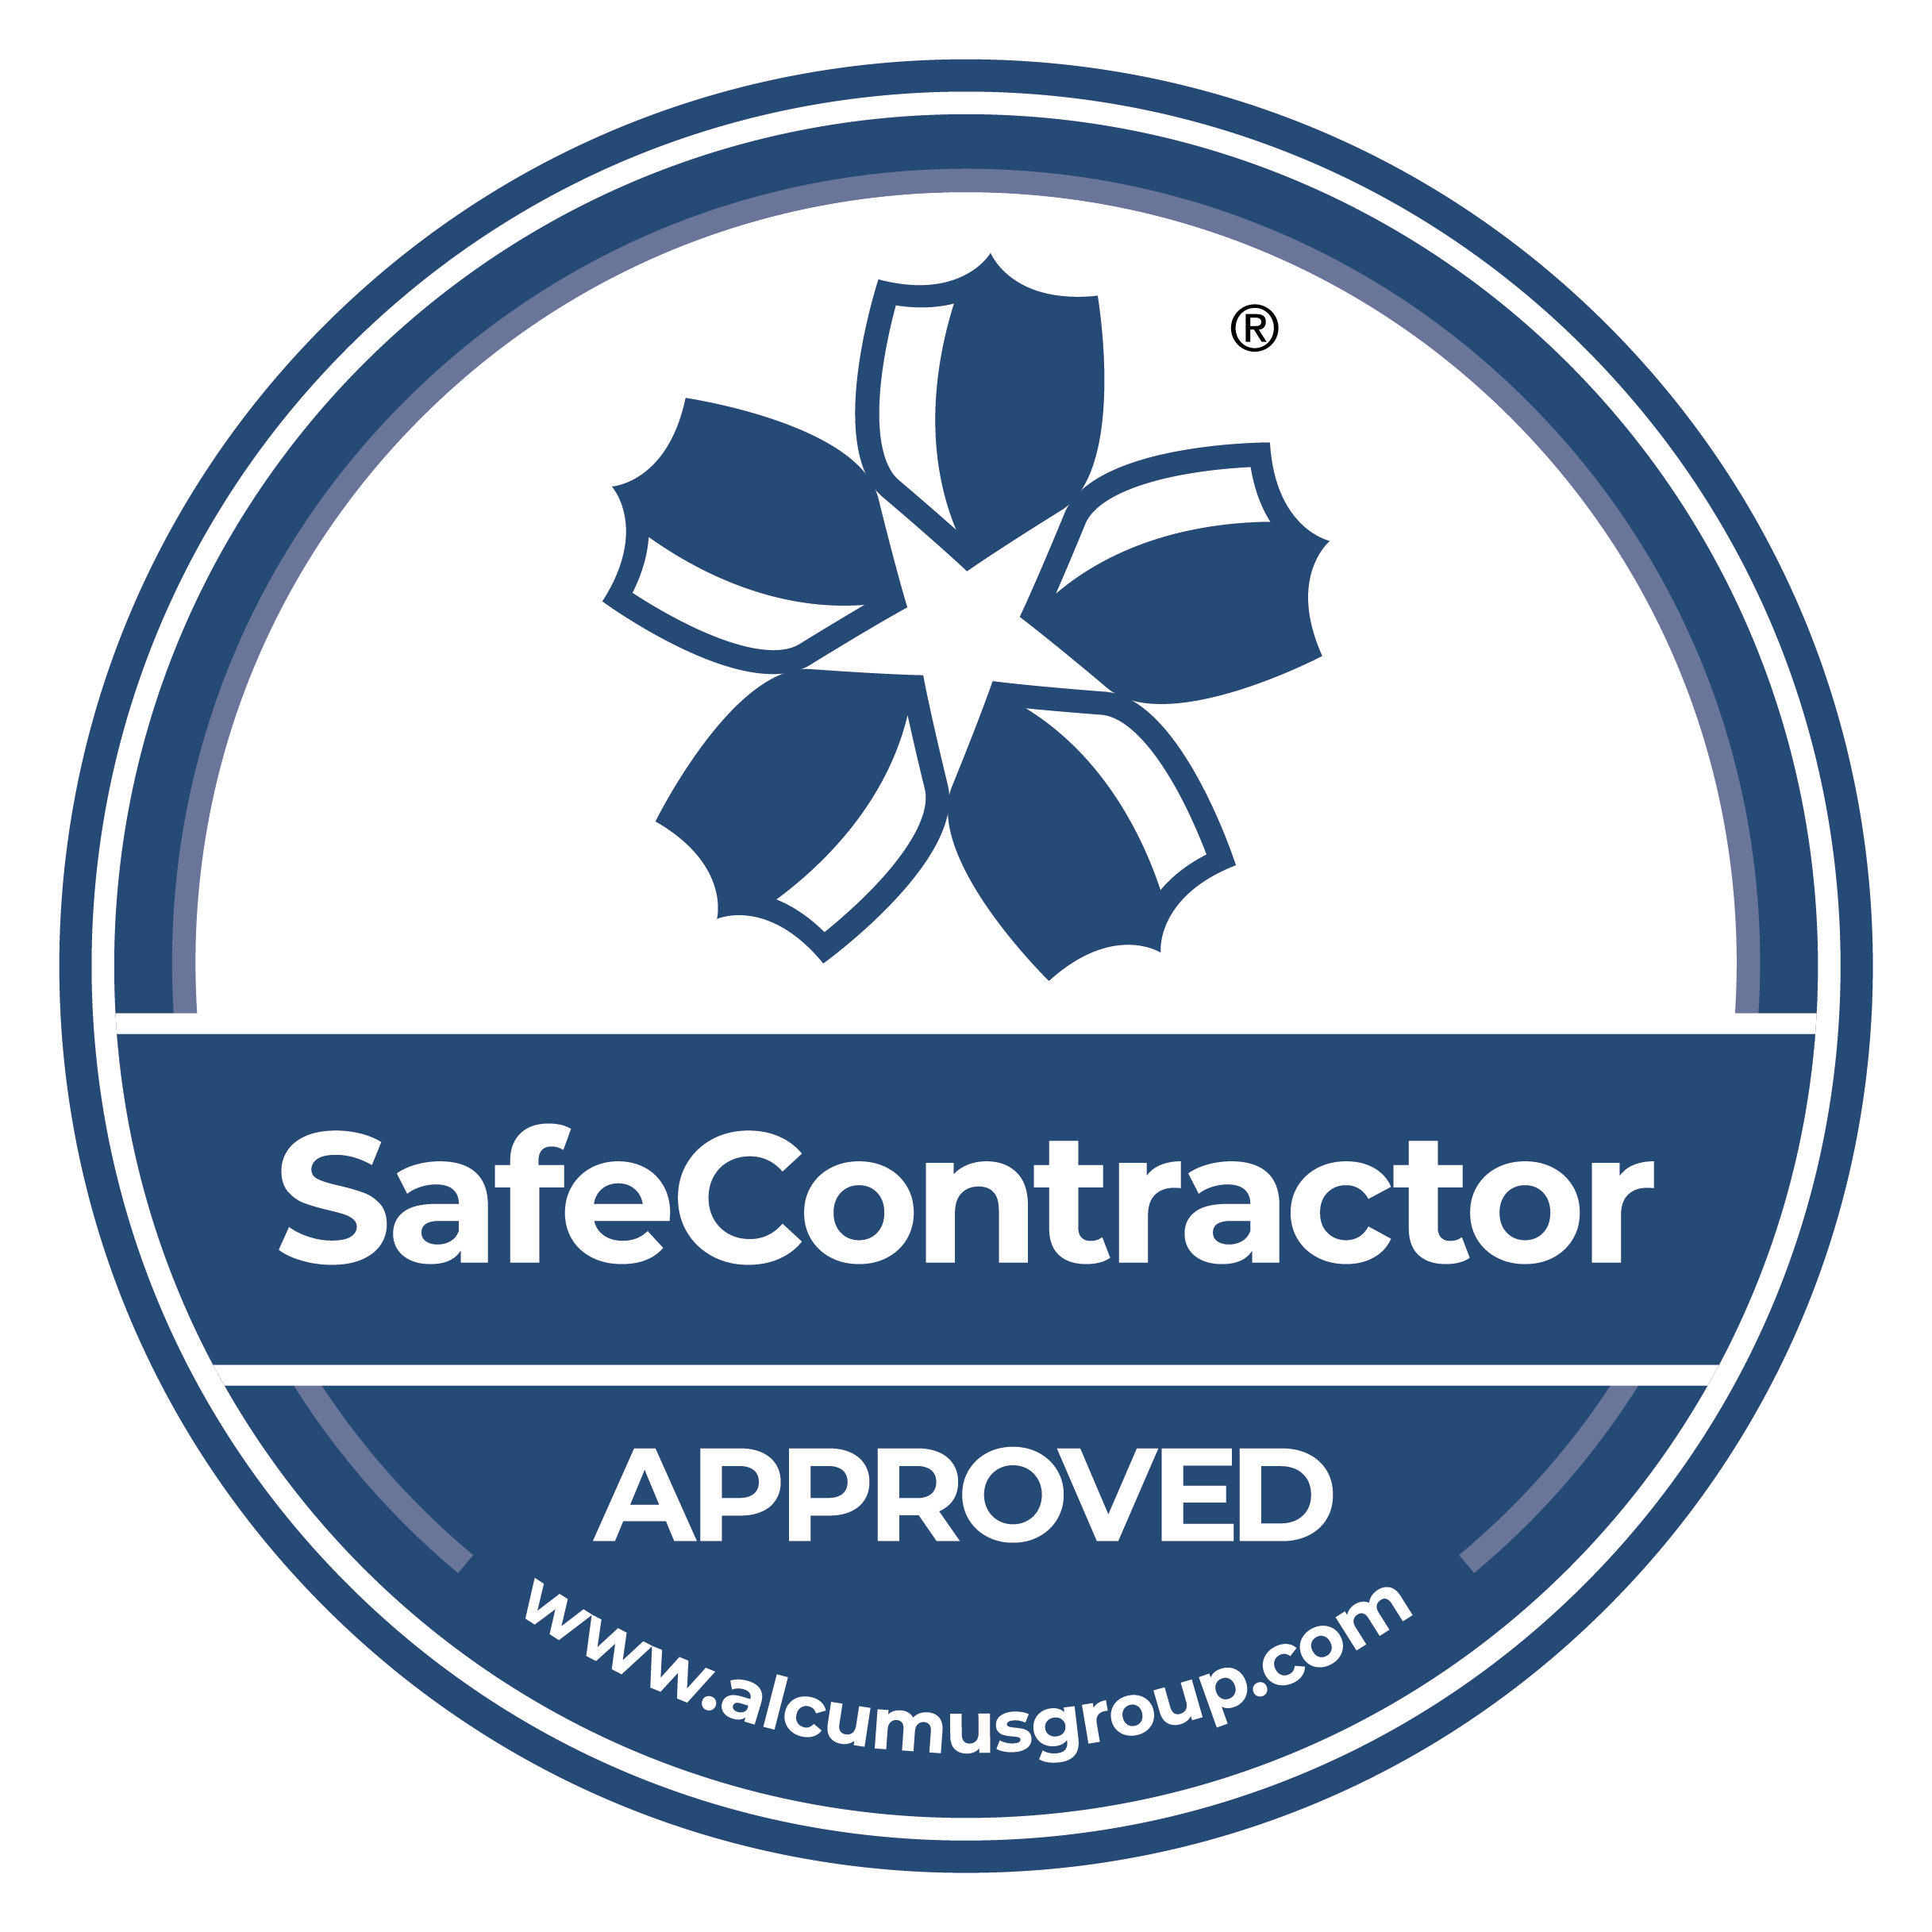 https://kingspowersolutions.co.uk/wp-content/uploads/2020/01/safe-contractor.png